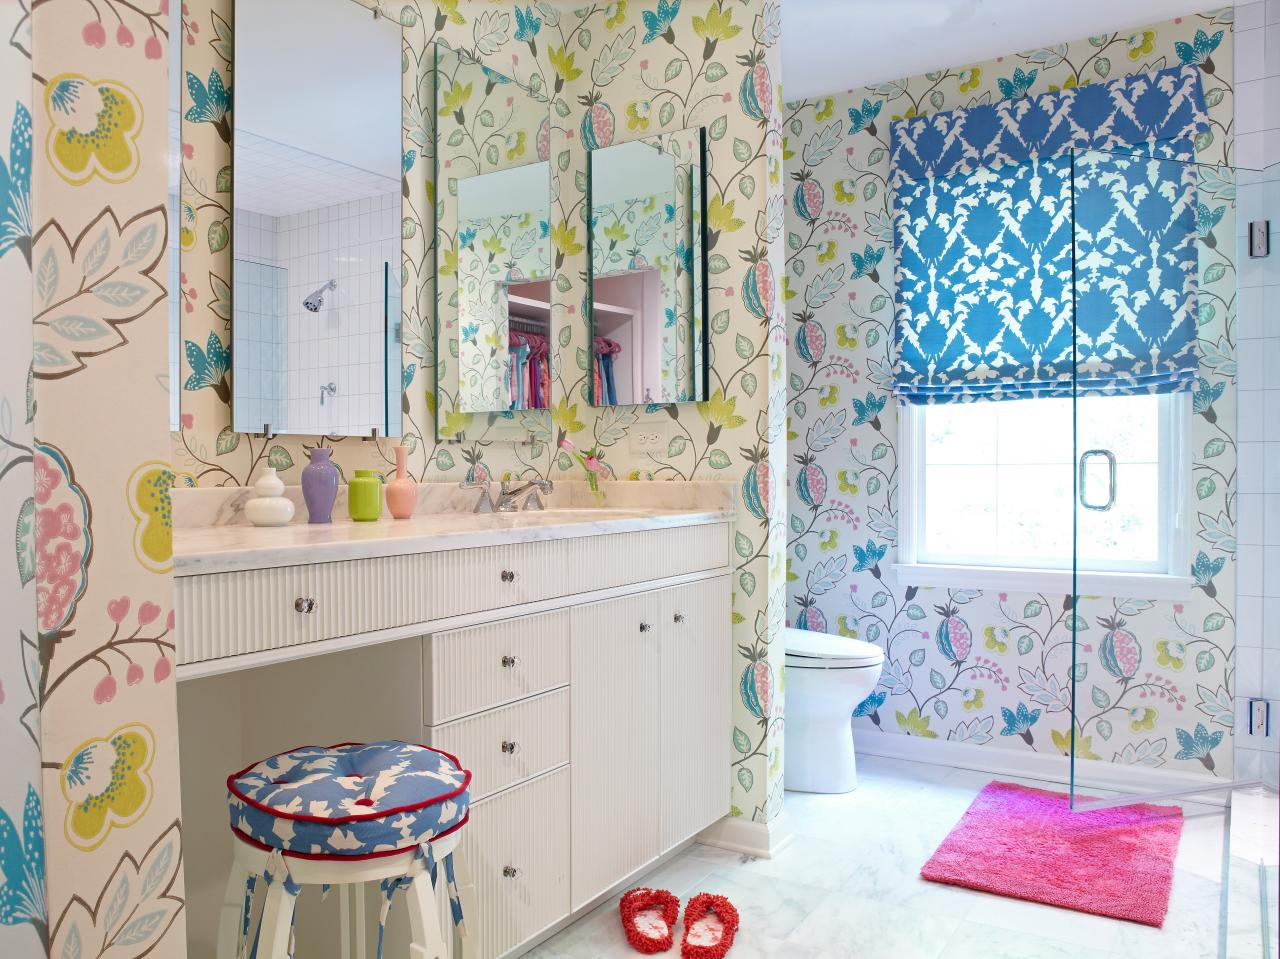 Funky Small Bathroom With Floral Wallpaper Design